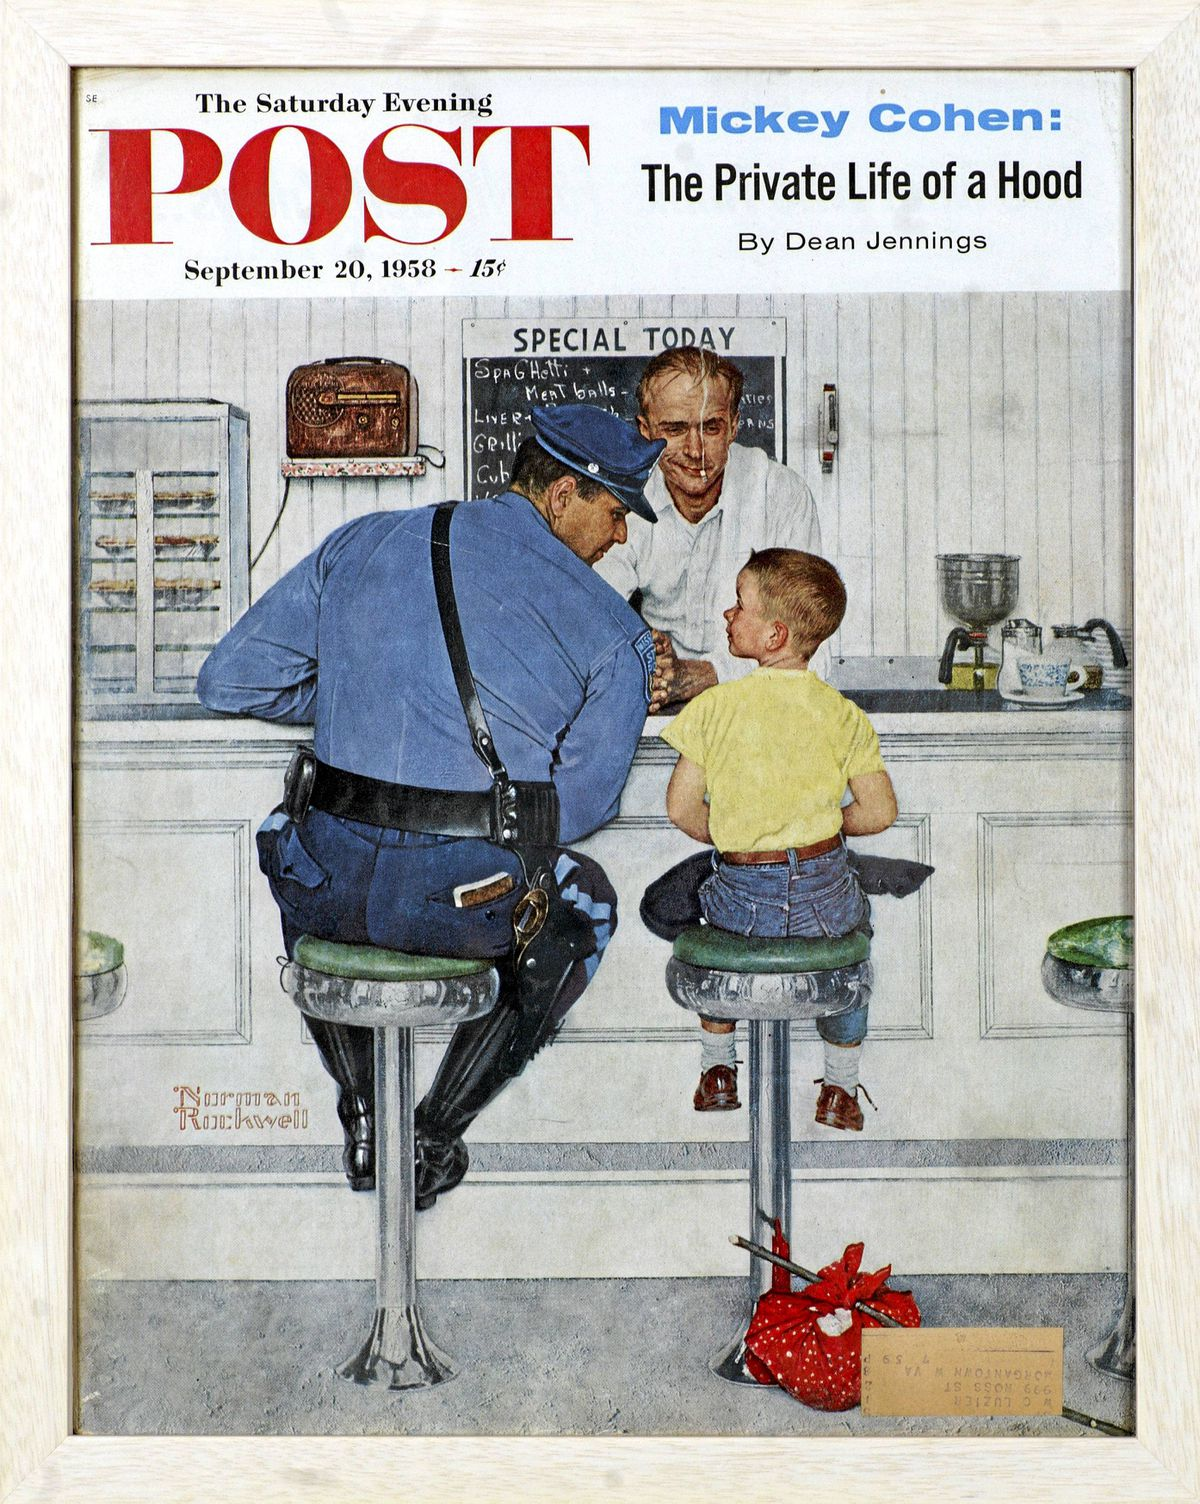 The Runaway Norman Rockwell, 1958. Cover illustration for The Saturday Evening Post, September 20, 1958.